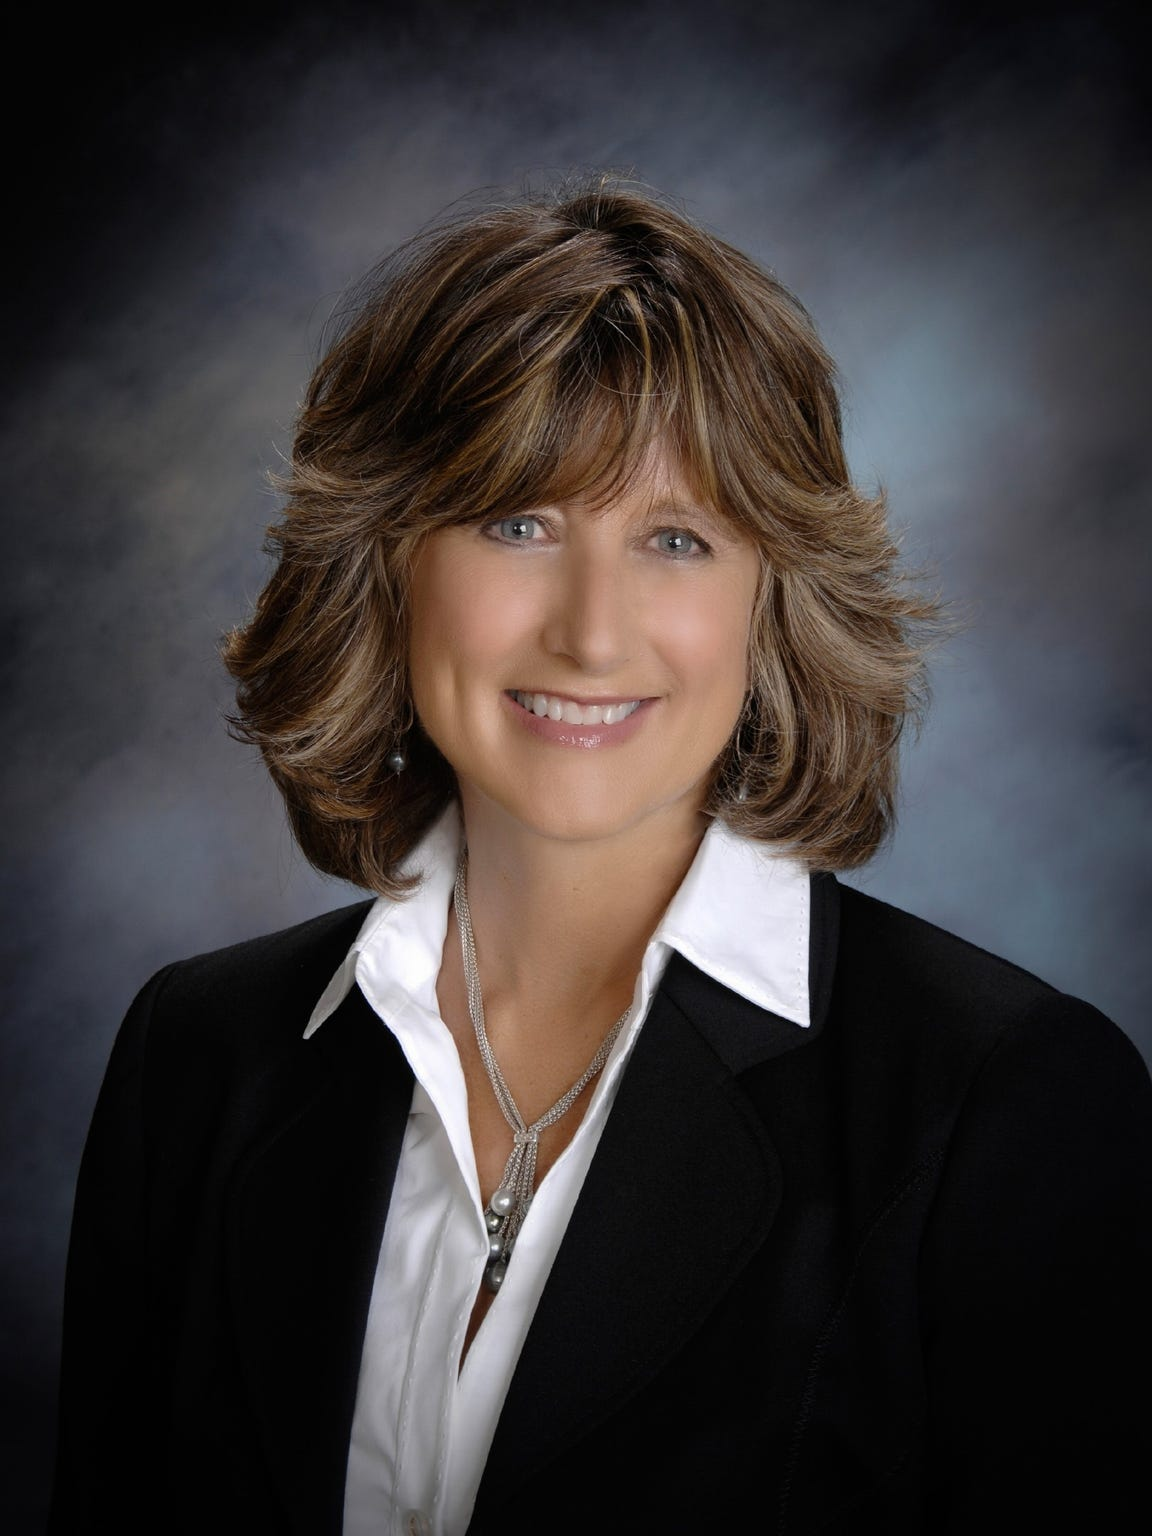 Trudy Tuttle Arriaga, former superintendent at the Ventura Unified School District